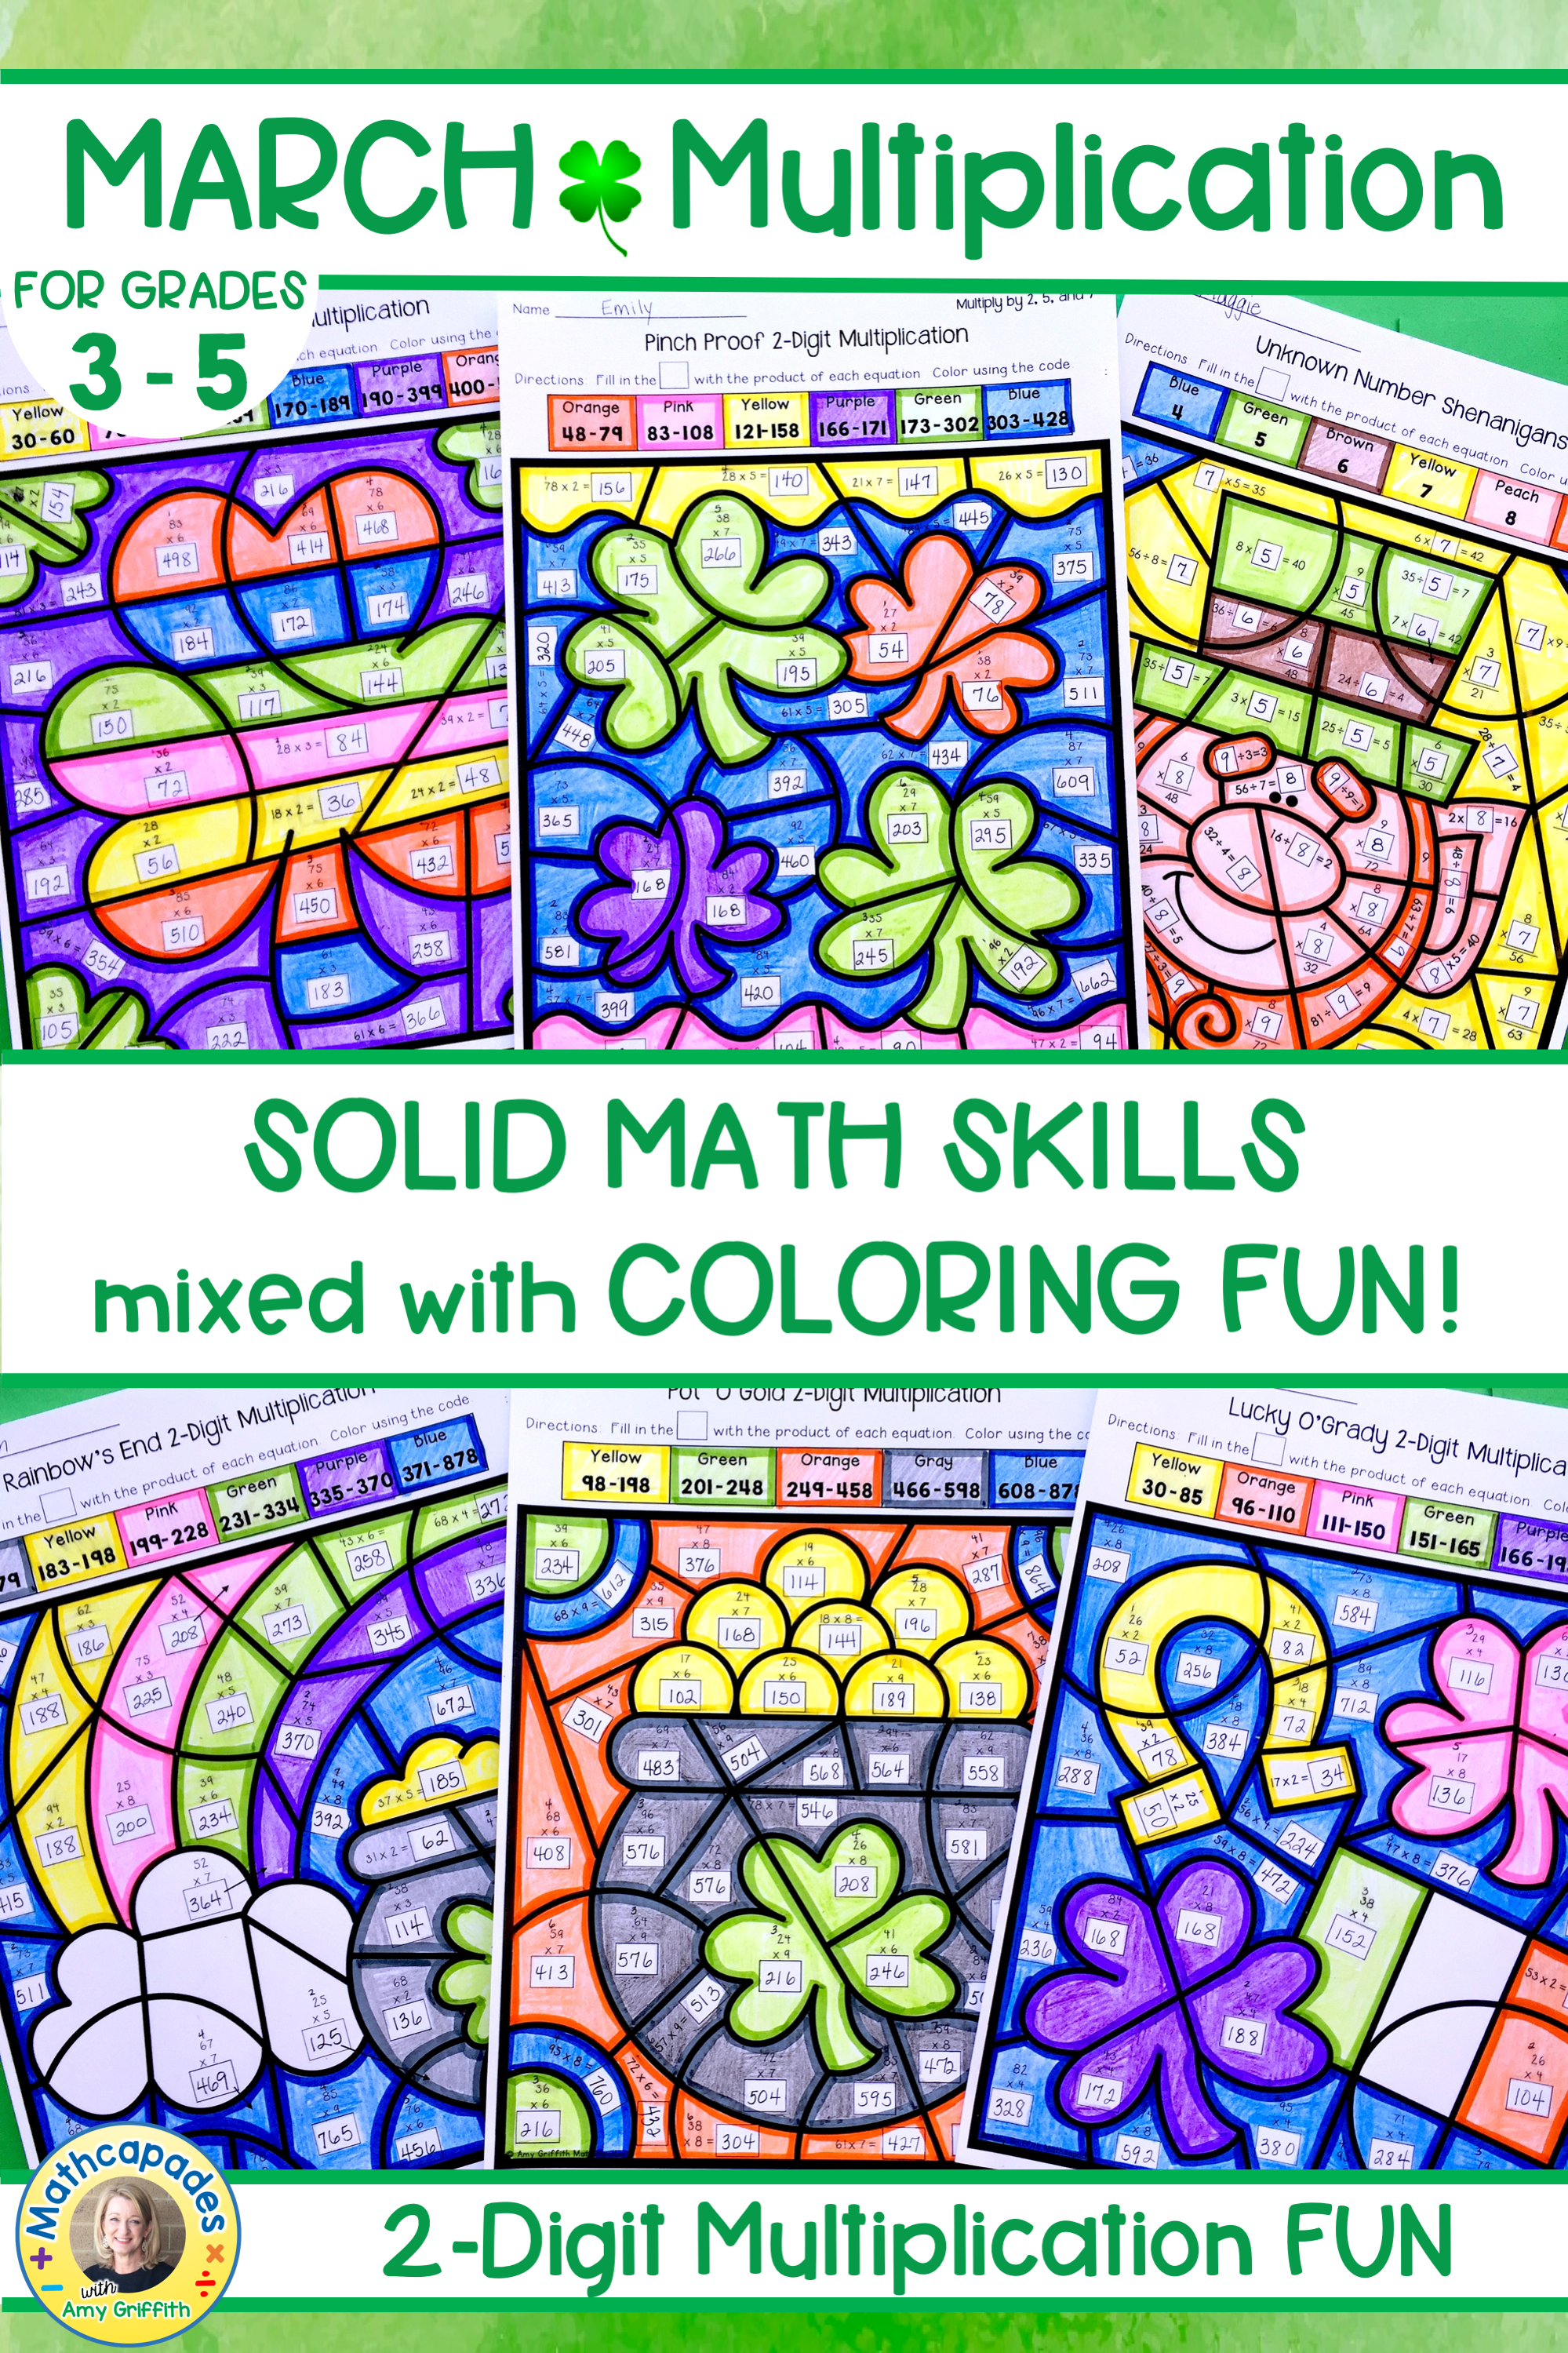 St Patrick S Day 2 Digit Multiplication Color By Number Activities Are Fun For 3rd 4th And 5th Grade Multiplication Upper Elementary Math Multiplication Fun [ 2999 x 1999 Pixel ]